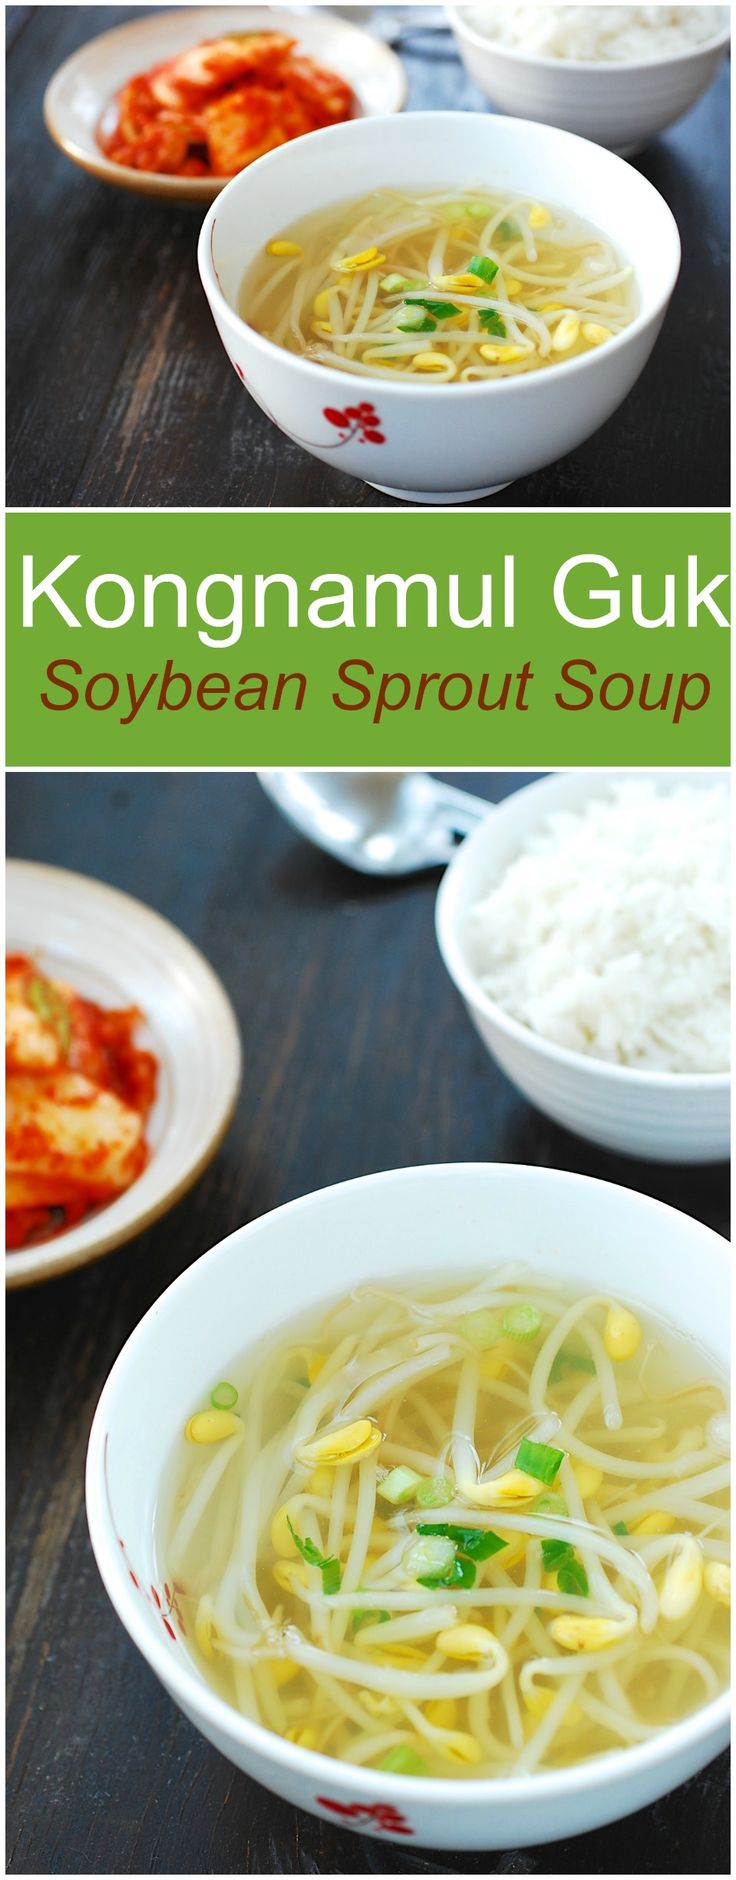 A staple Korean soup made with soybean sprouts! Nice and refreshing!